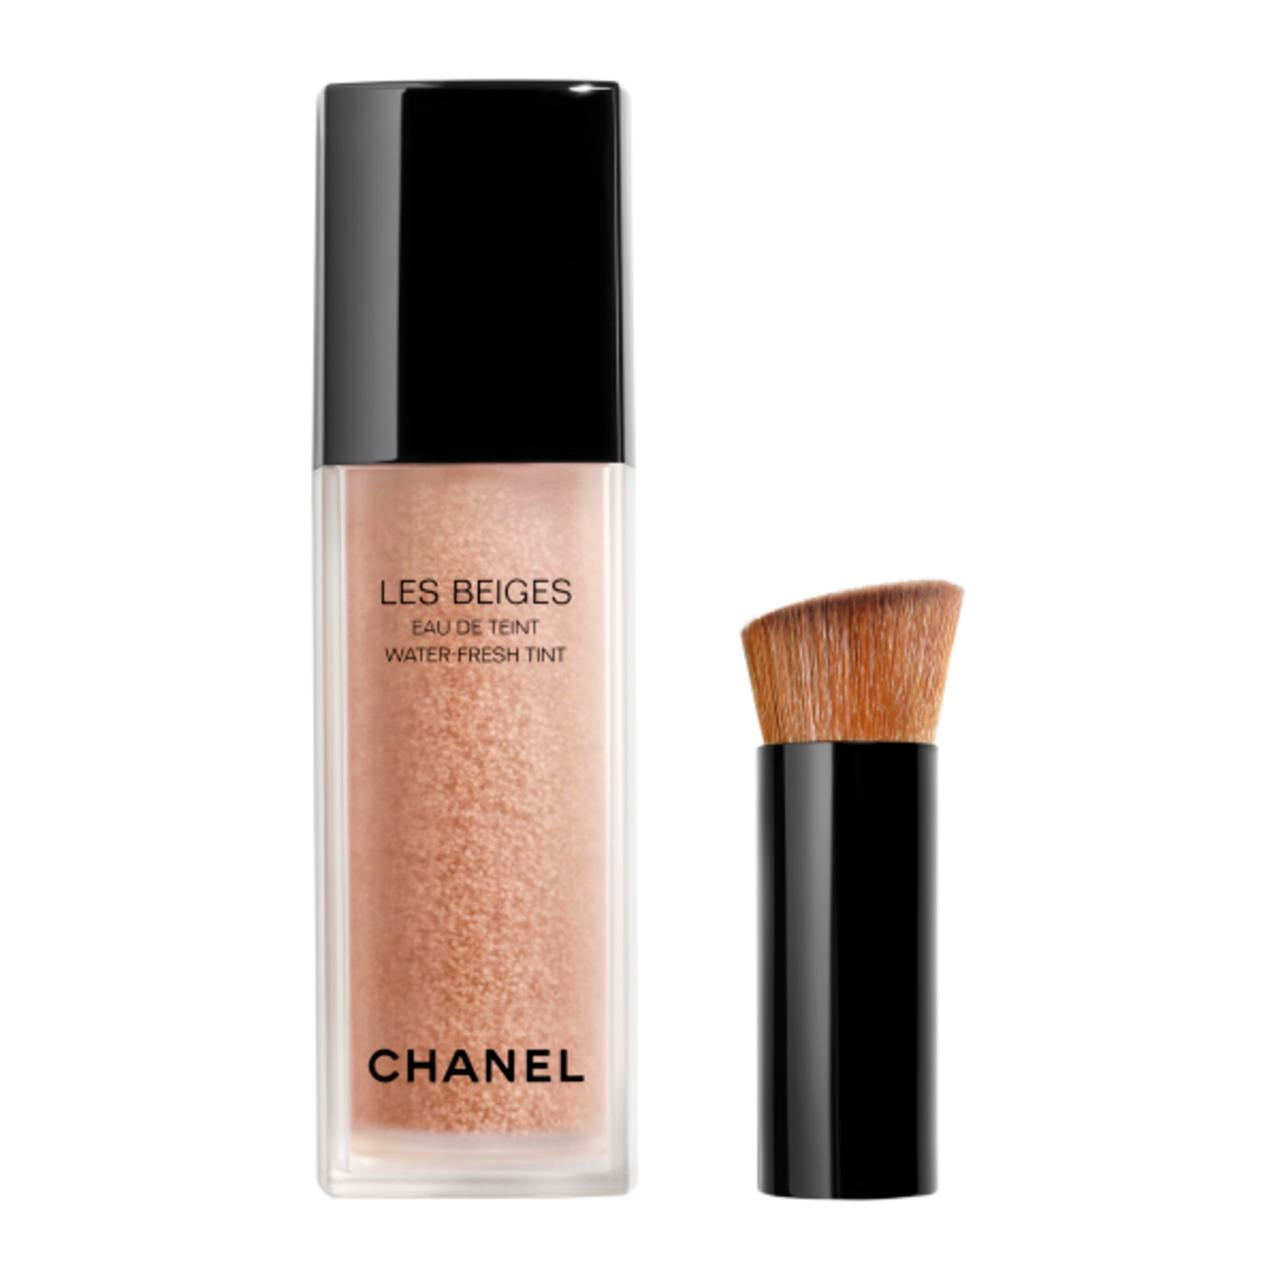 Chanel Les Beiges Water Fresh Tint, 10.199 kr.